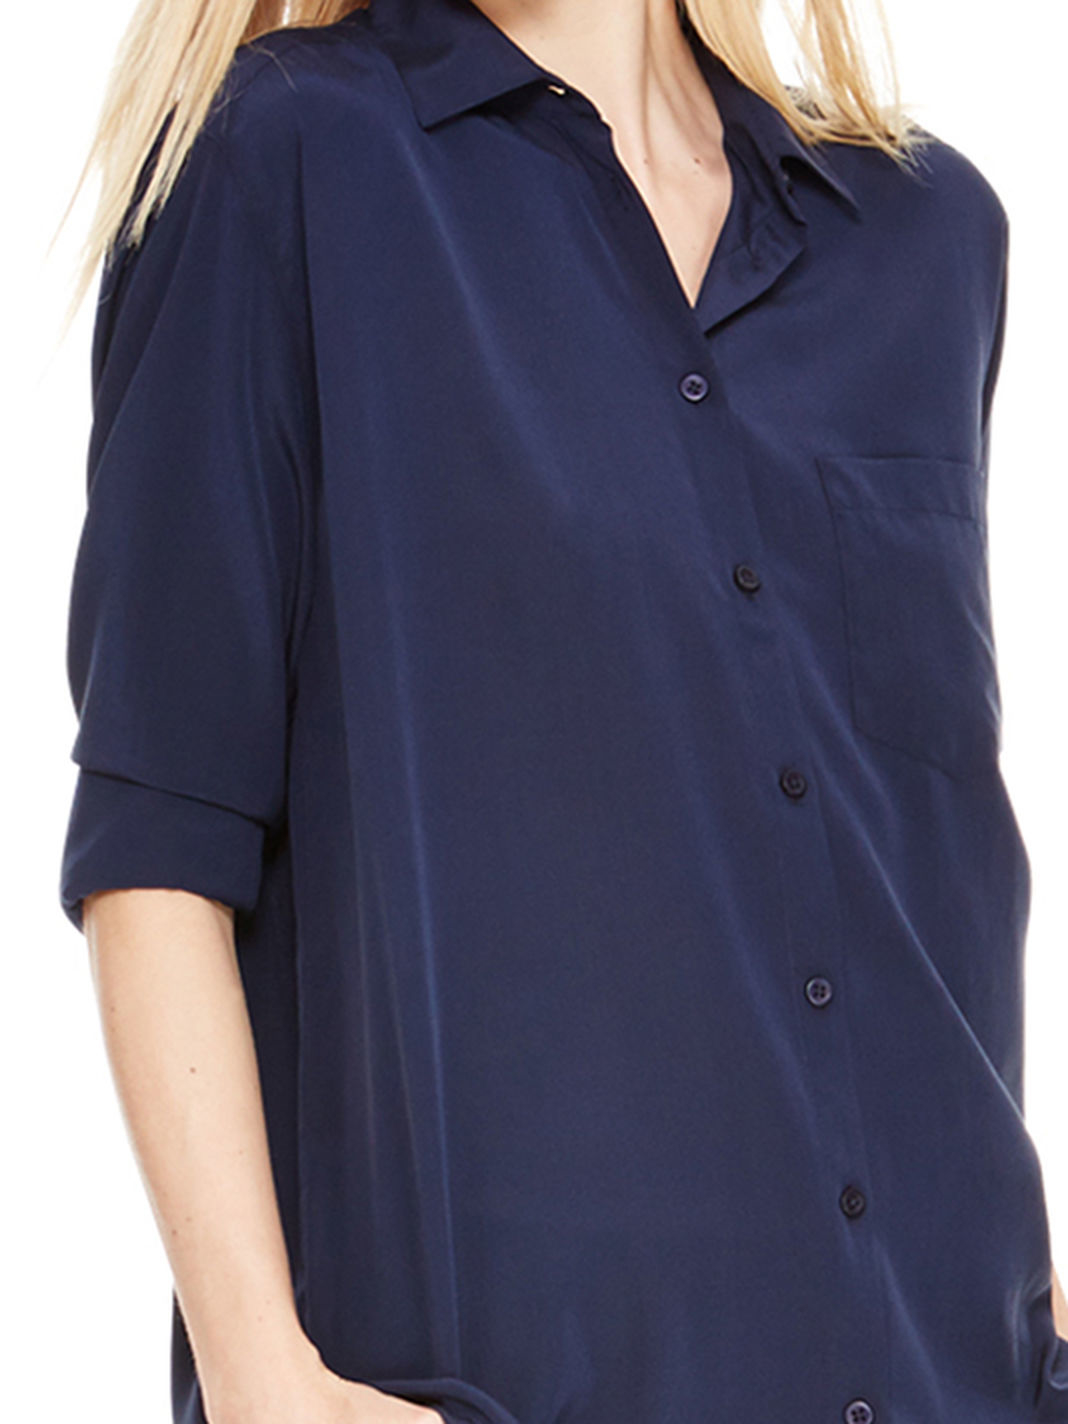 Dkny Collared Shirt With Chest Pocket in Blue | Lyst